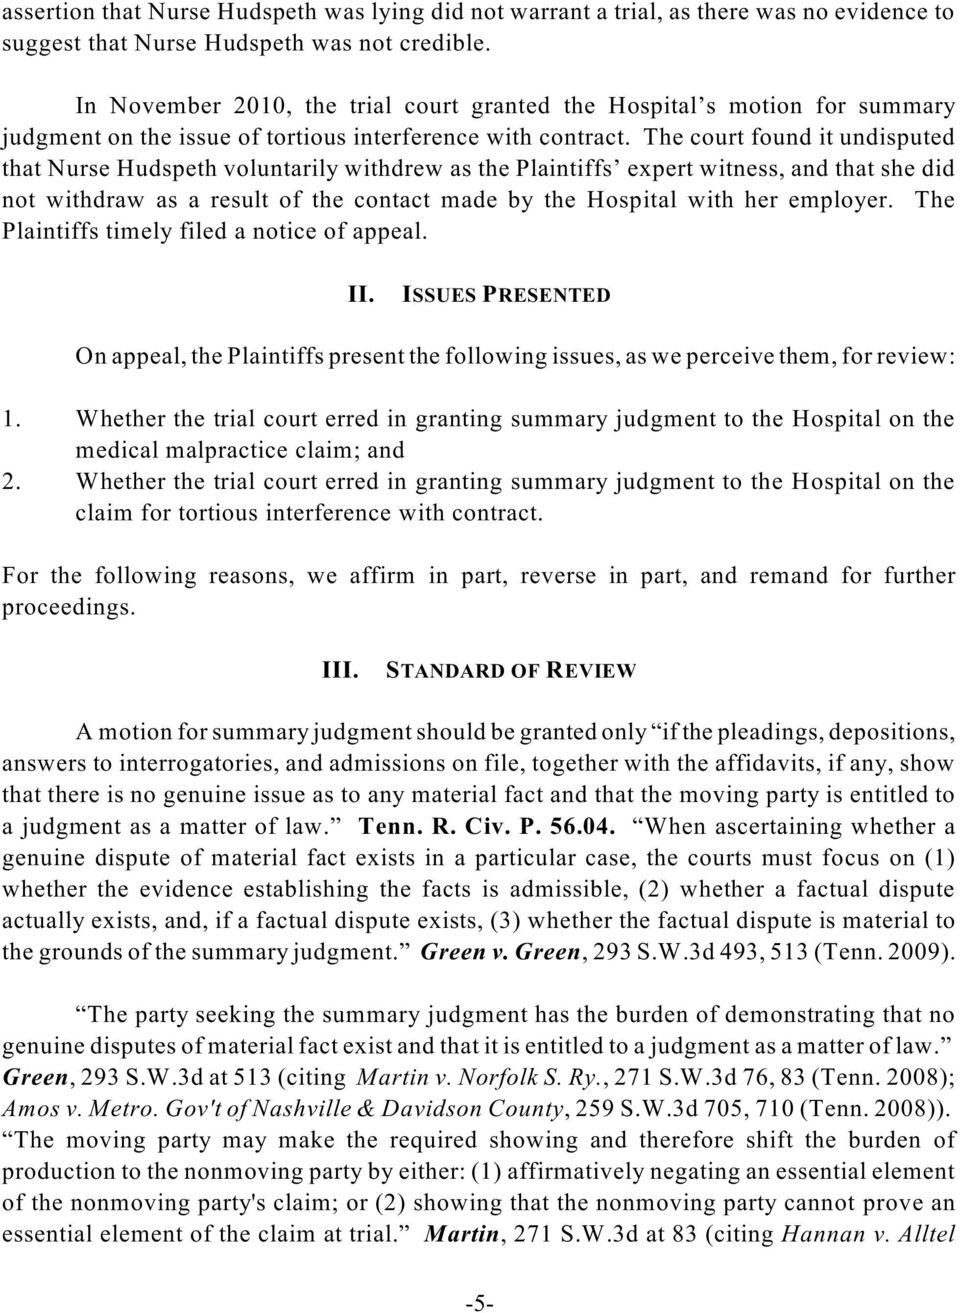 The court found it undisputed that Nurse Hudspeth voluntarily withdrew as the Plaintiffs expert witness, and that she did not withdraw as a result of the contact made by the Hospital with her